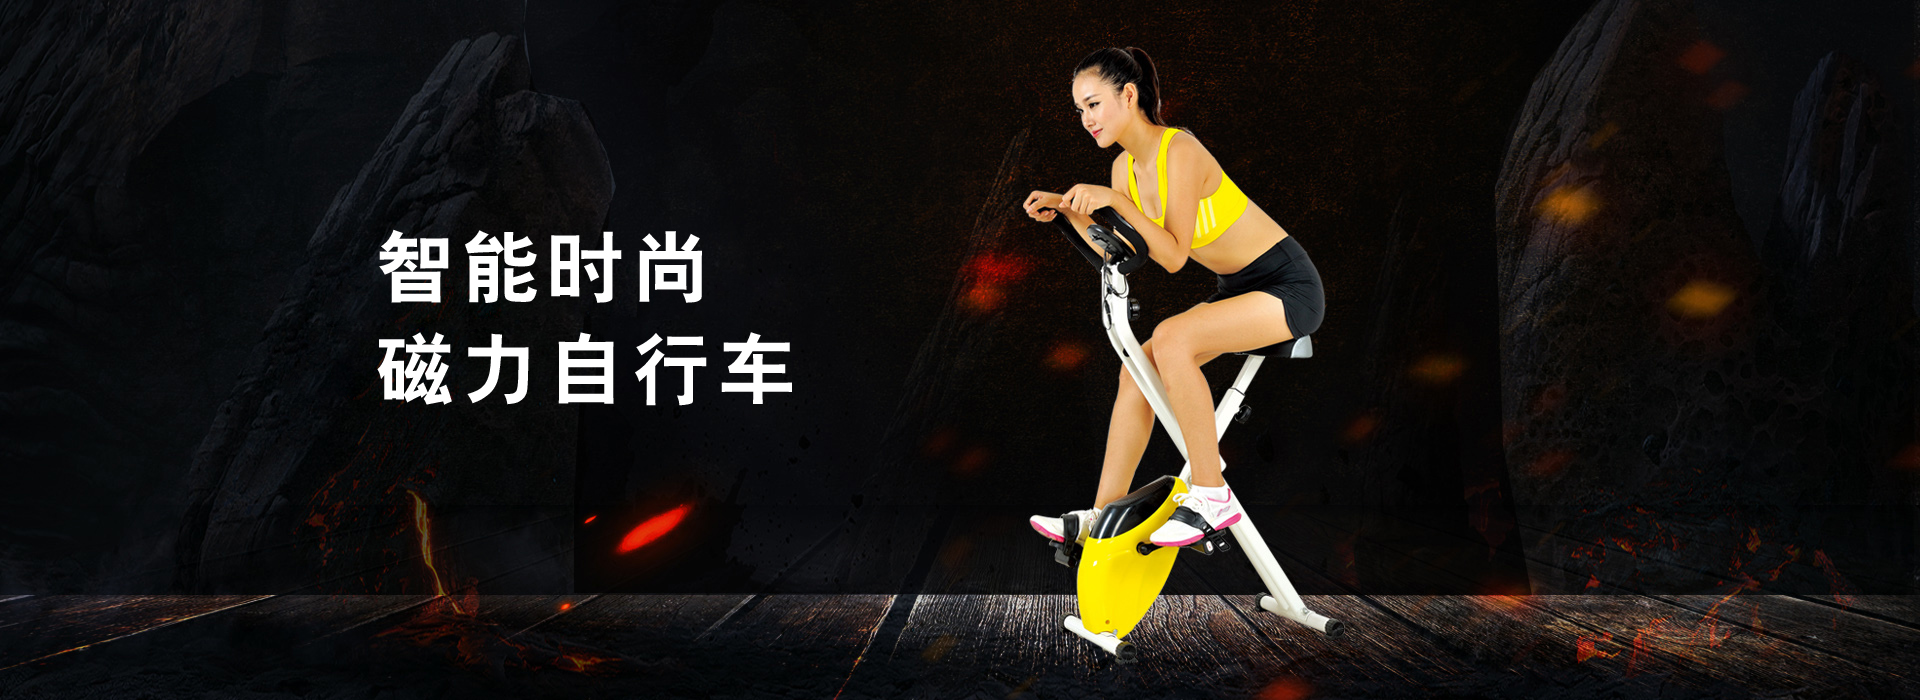 Qiang Ben-Jinhua Qiangben Fitness Equipment-Strong Fitness Equipment- is a factory specializing in the production of sporting goods and indoor fitness equipment products.